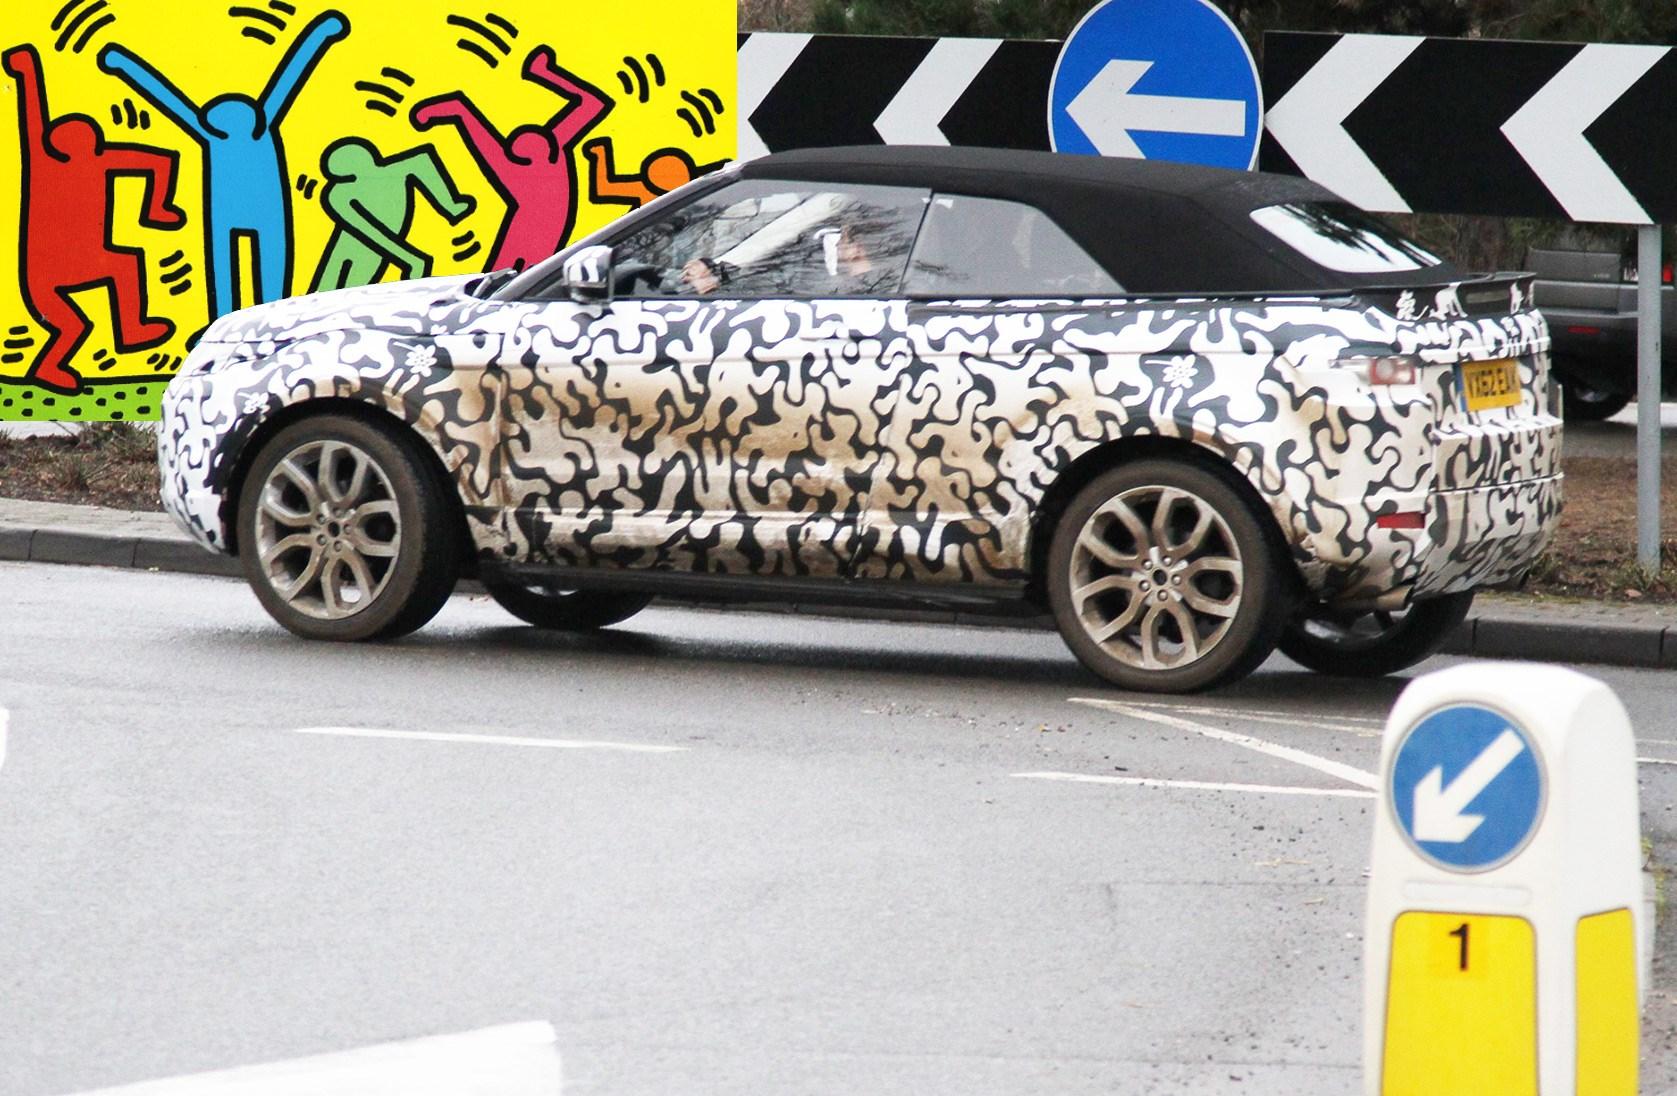 The Art Of Car Disguise Prototype Camouflage Decoded Magazine Click Here For A Photograph Range Rover Evoque Cabrio Shrouded In Keith Haring Style Camo